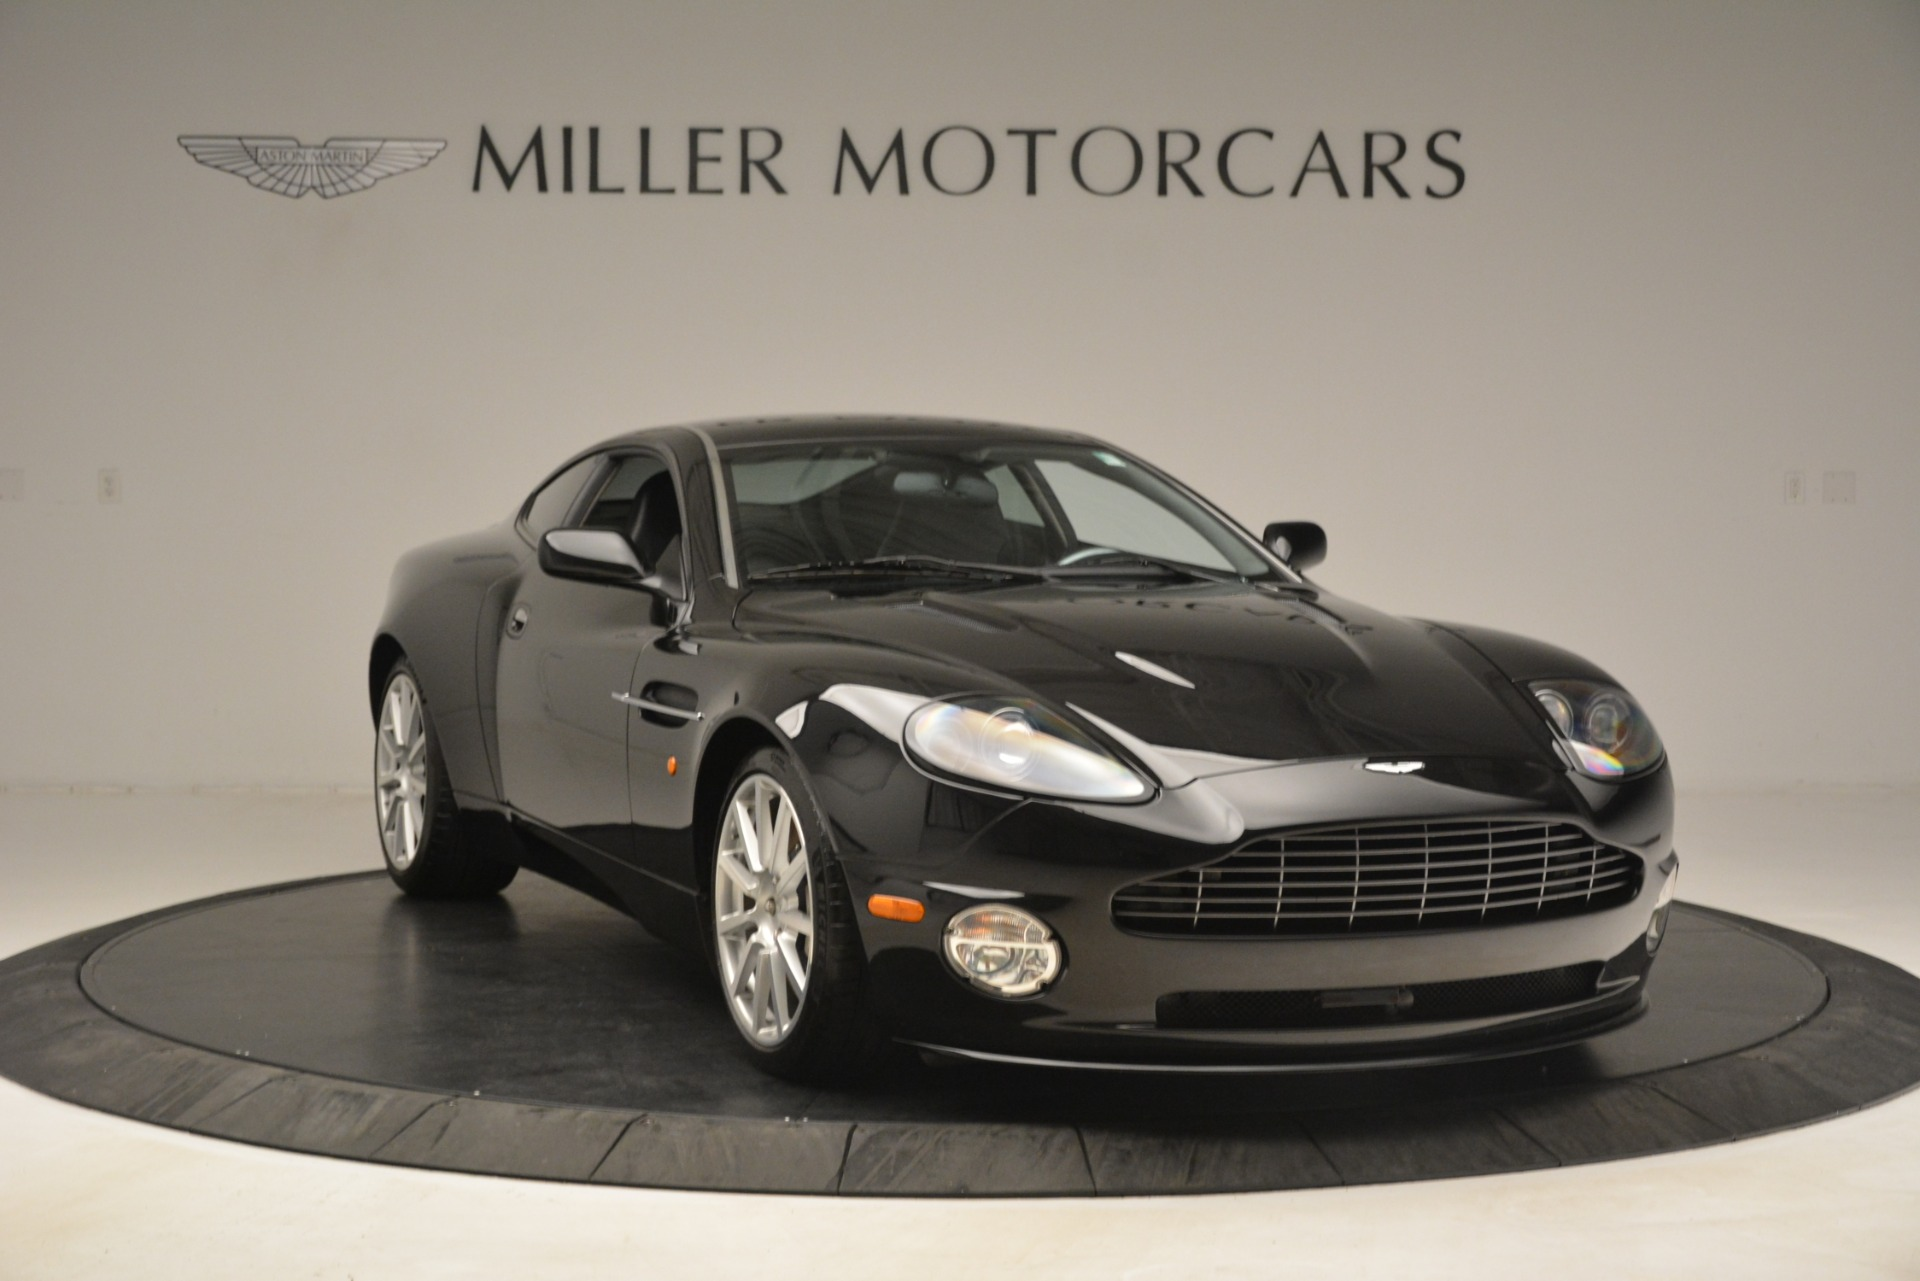 Used 2005 Aston Martin V12 Vanquish S For Sale In Greenwich, CT 3218_p11